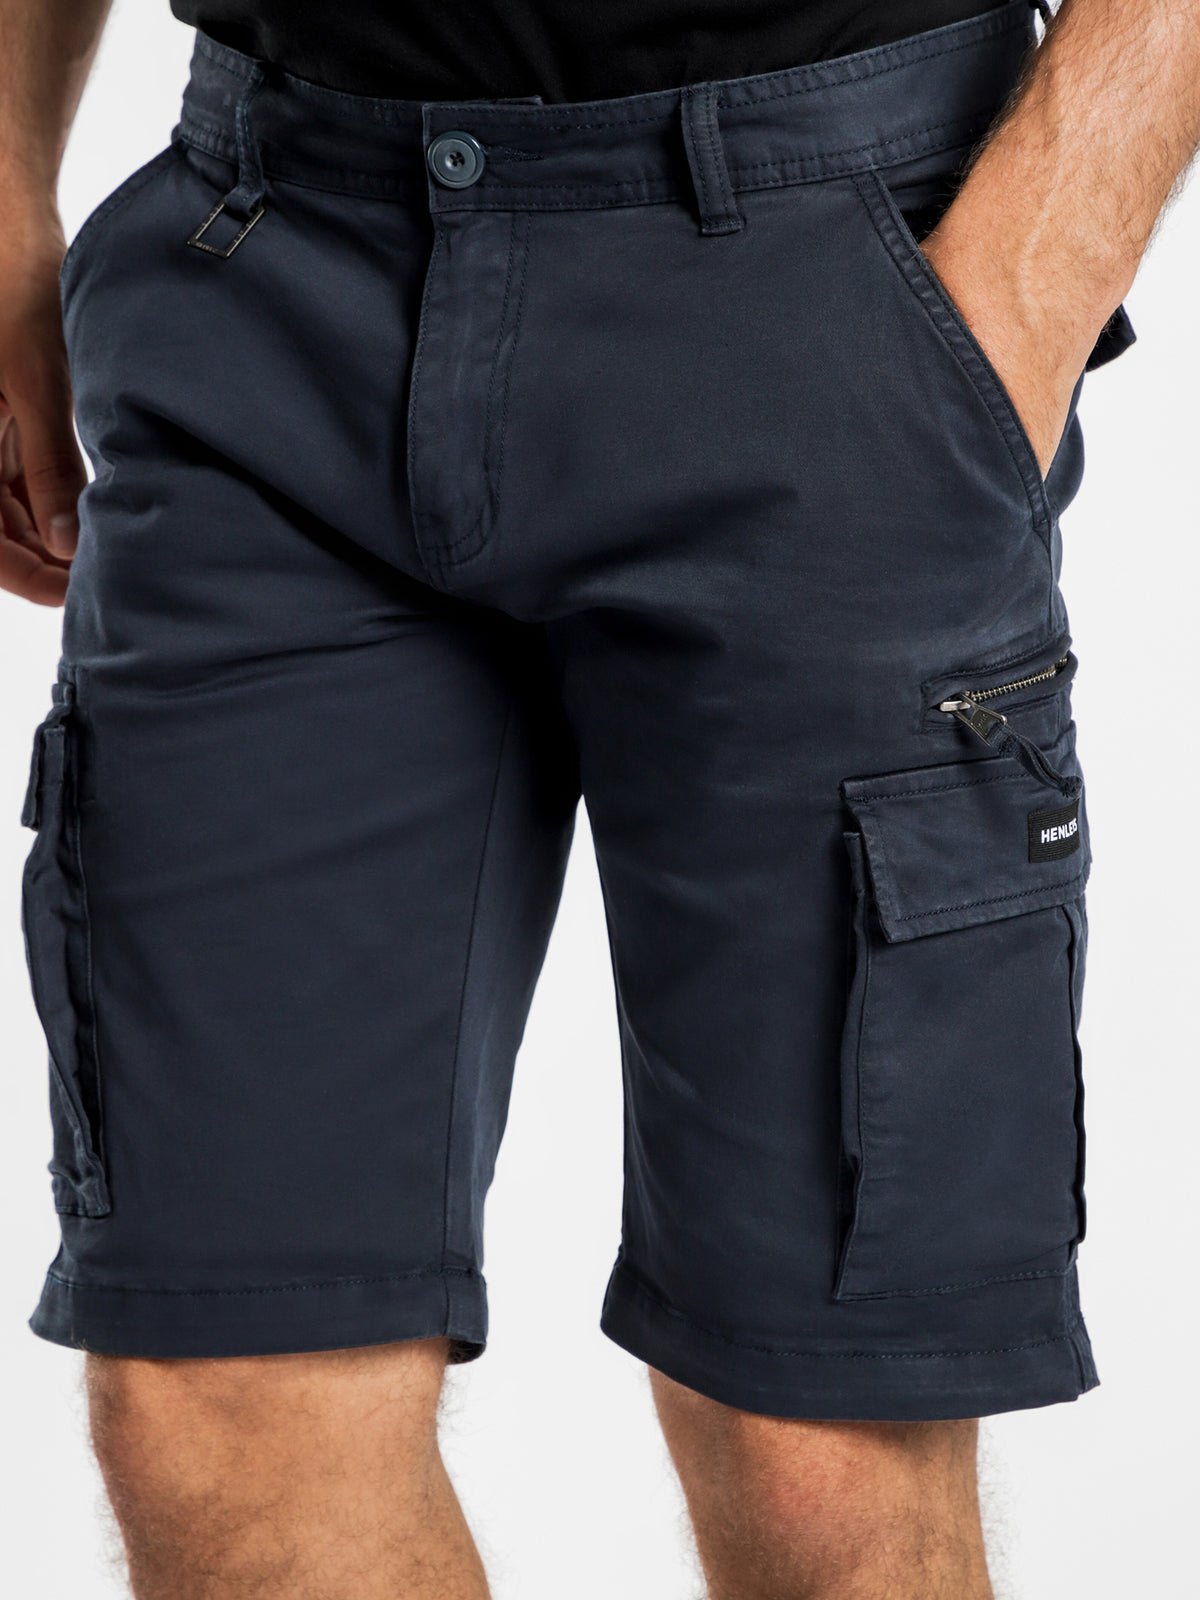 Otis Shorts in Navy